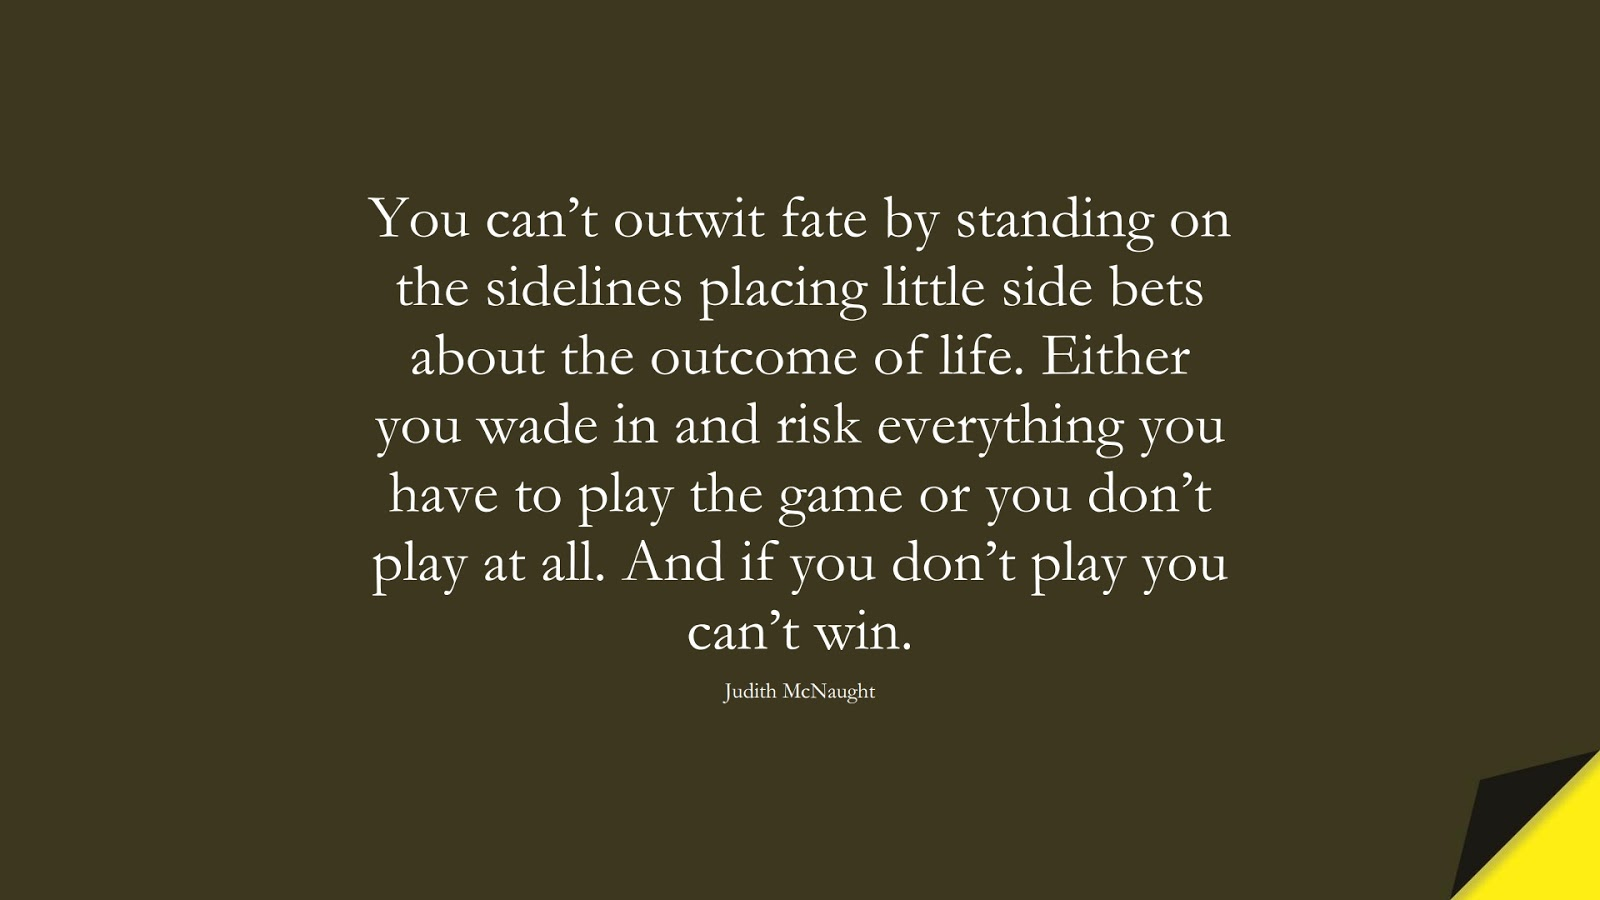 You can't outwit fate by standing on the sidelines placing little side bets about the outcome of life. Either you wade in and risk everything you have to play the game or you don't play at all. And if you don't play you can't win. (Judith McNaught);  #LifeQuotes